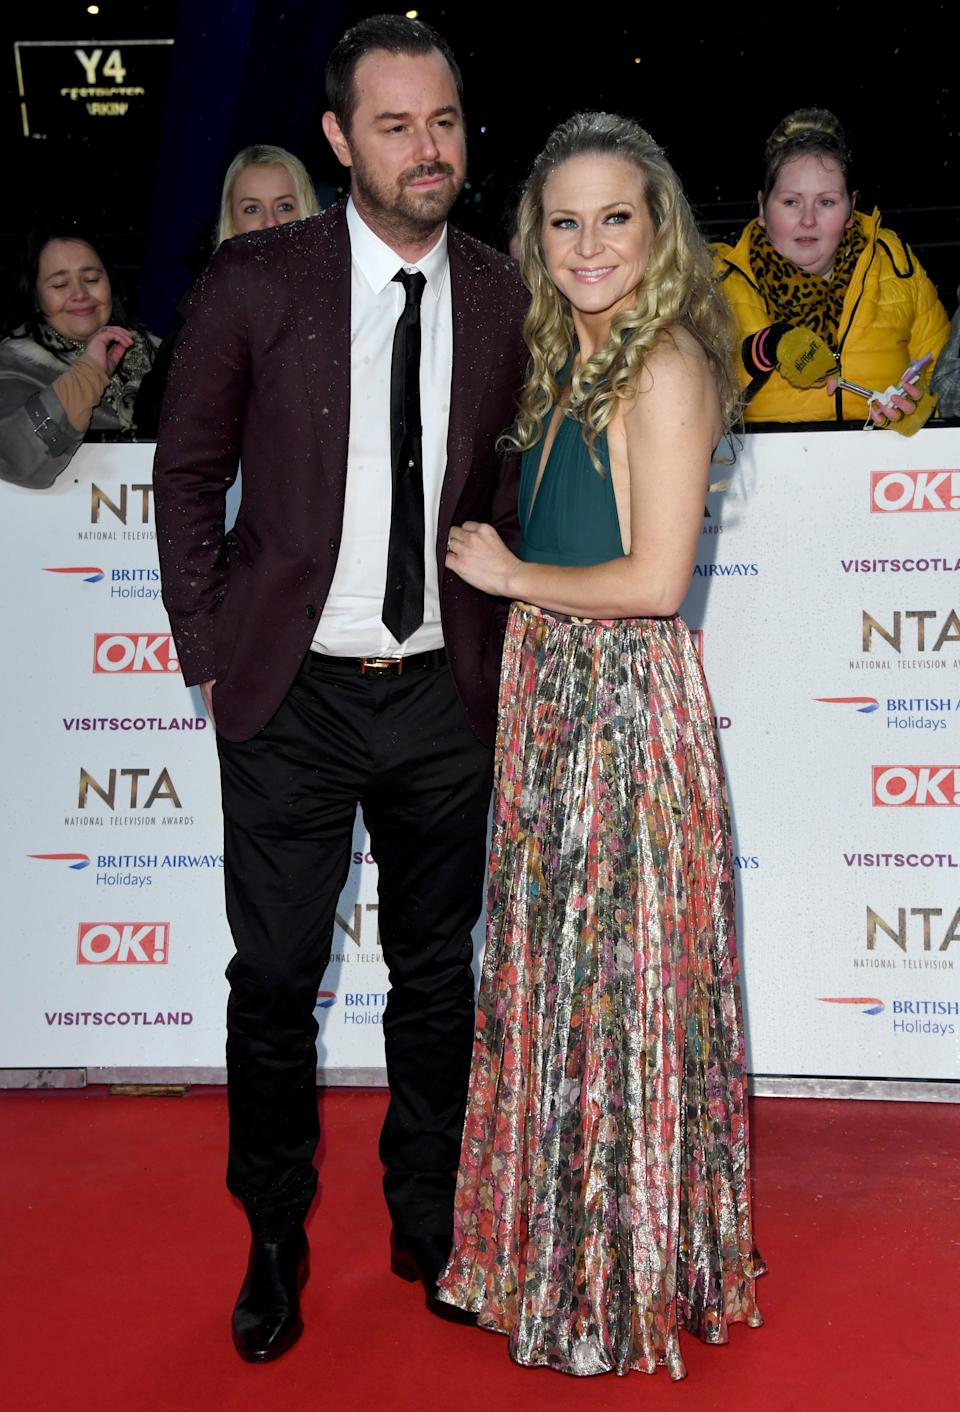 <p>Dyer is wearing a burgundy-hued suit while co-star Bright opted for a halterneck dress. <em>[Photo: Getty]</em> </p>